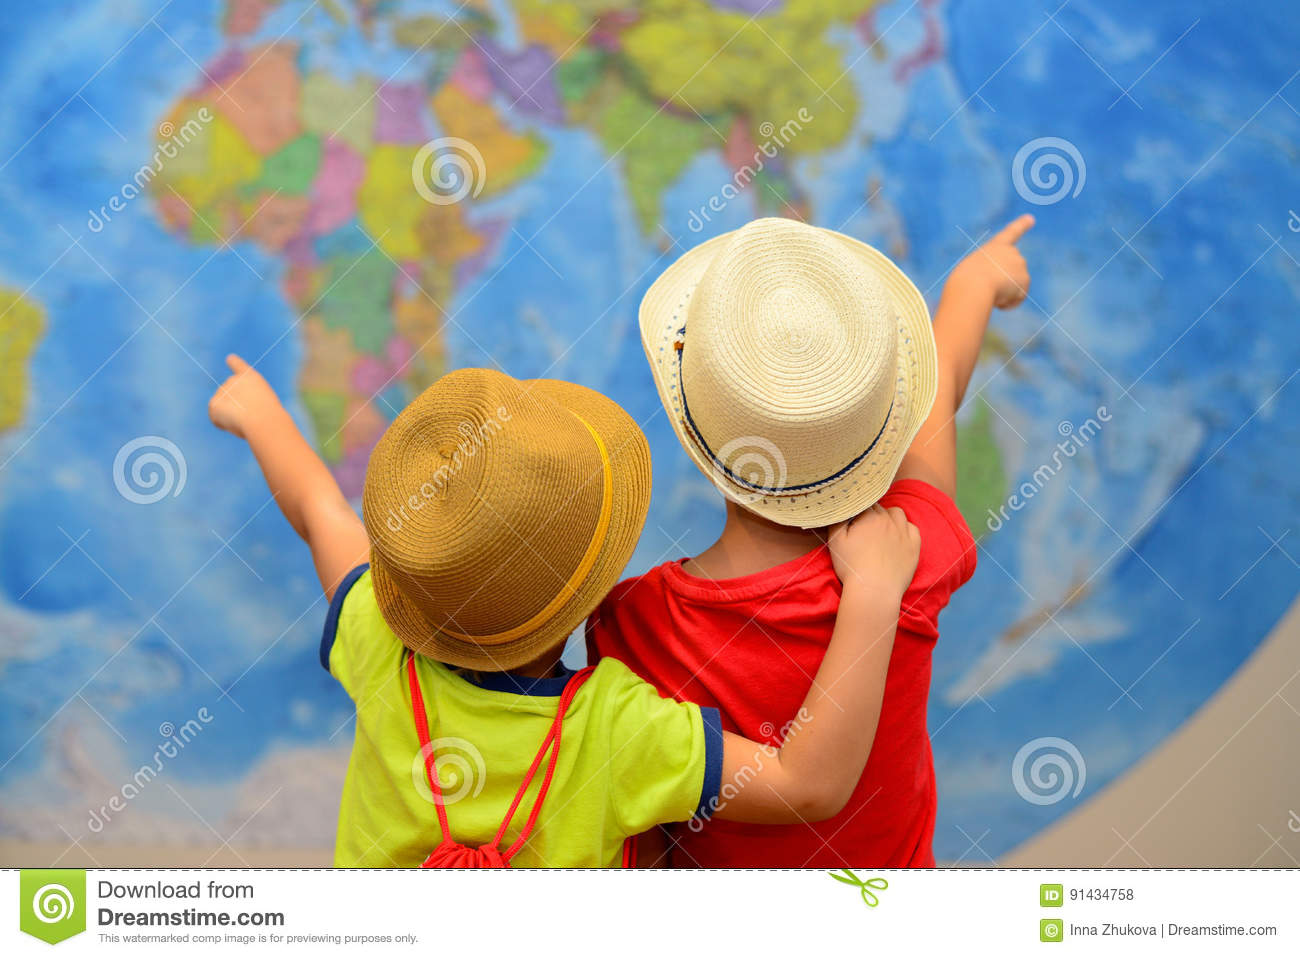 Adventure and travel concept. Happy kids are dreaming about travel, vacation.